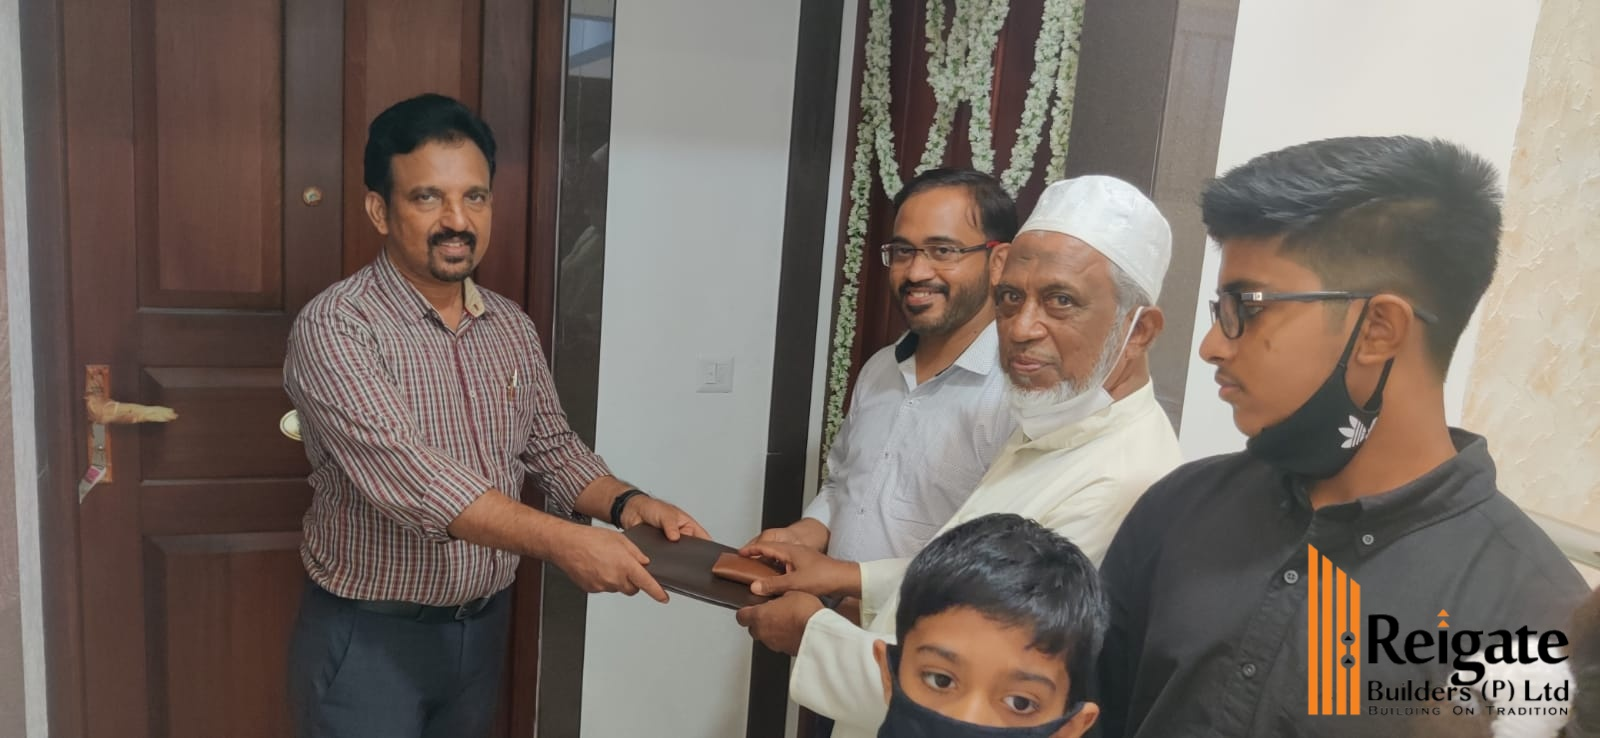 Key handing over of Mr. Dr. Abdul Jaleel - Marina apartment project